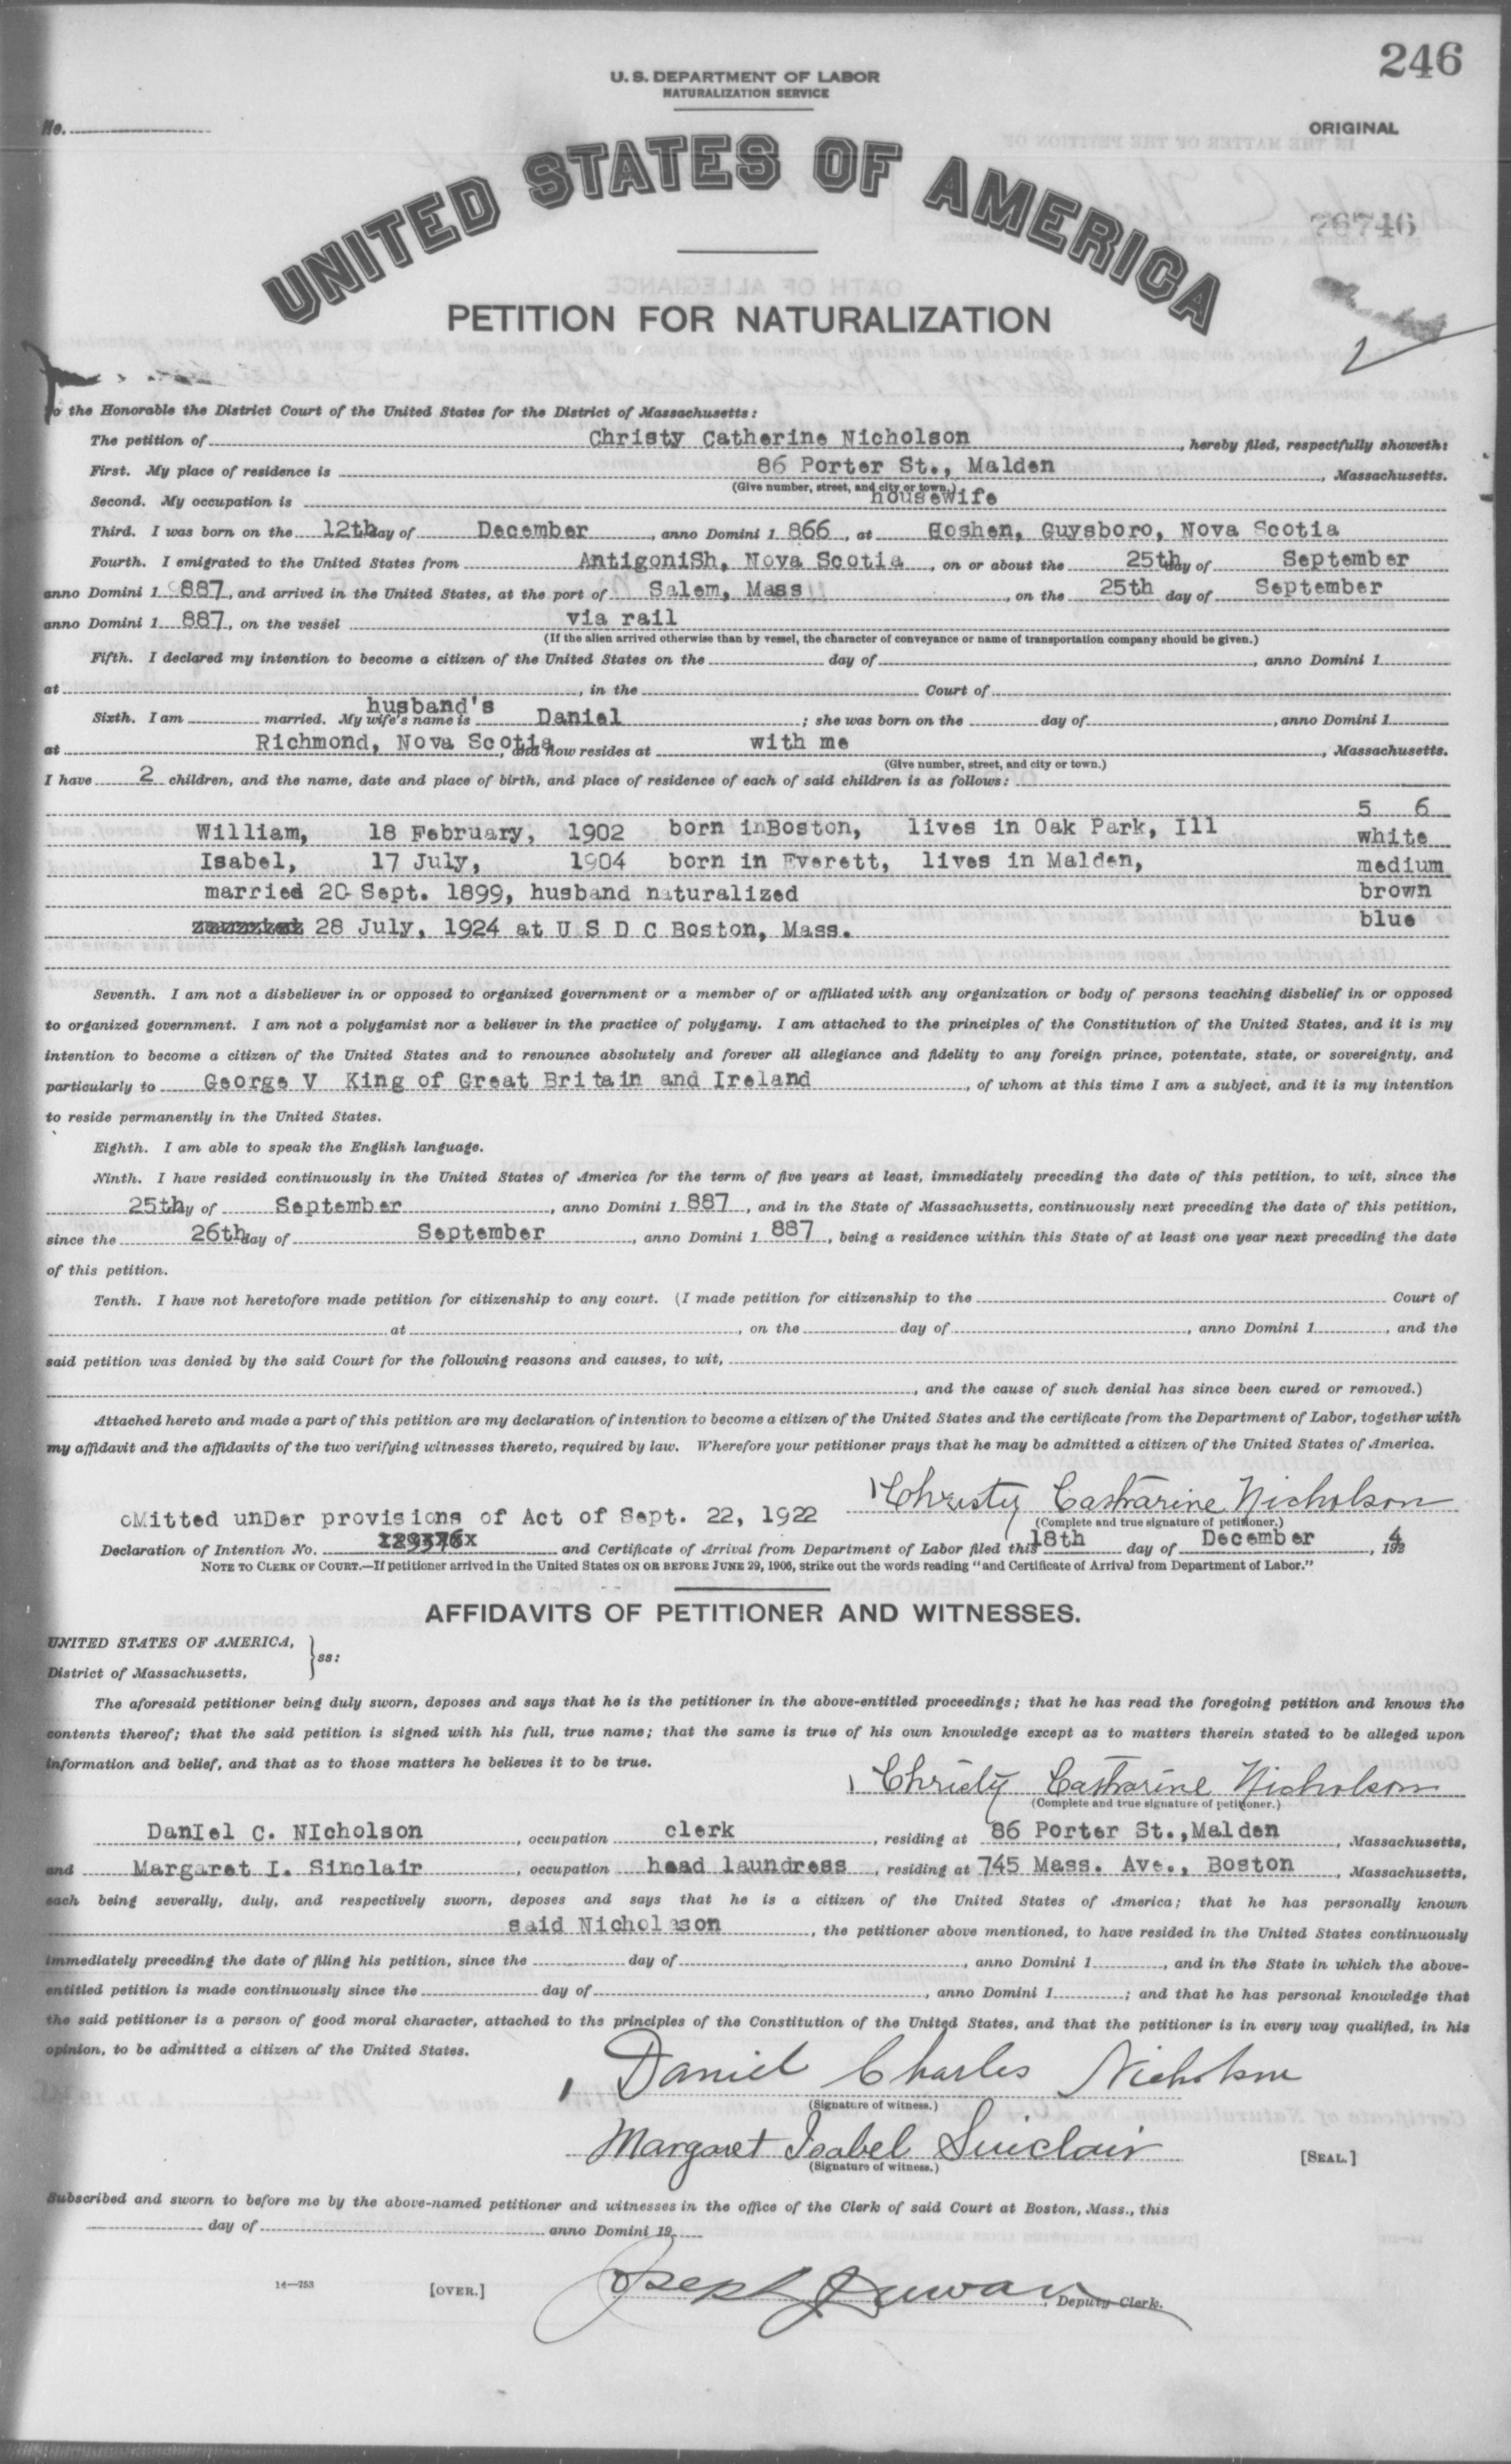 Petition for Naturalization of Christy Catherine Nicholson